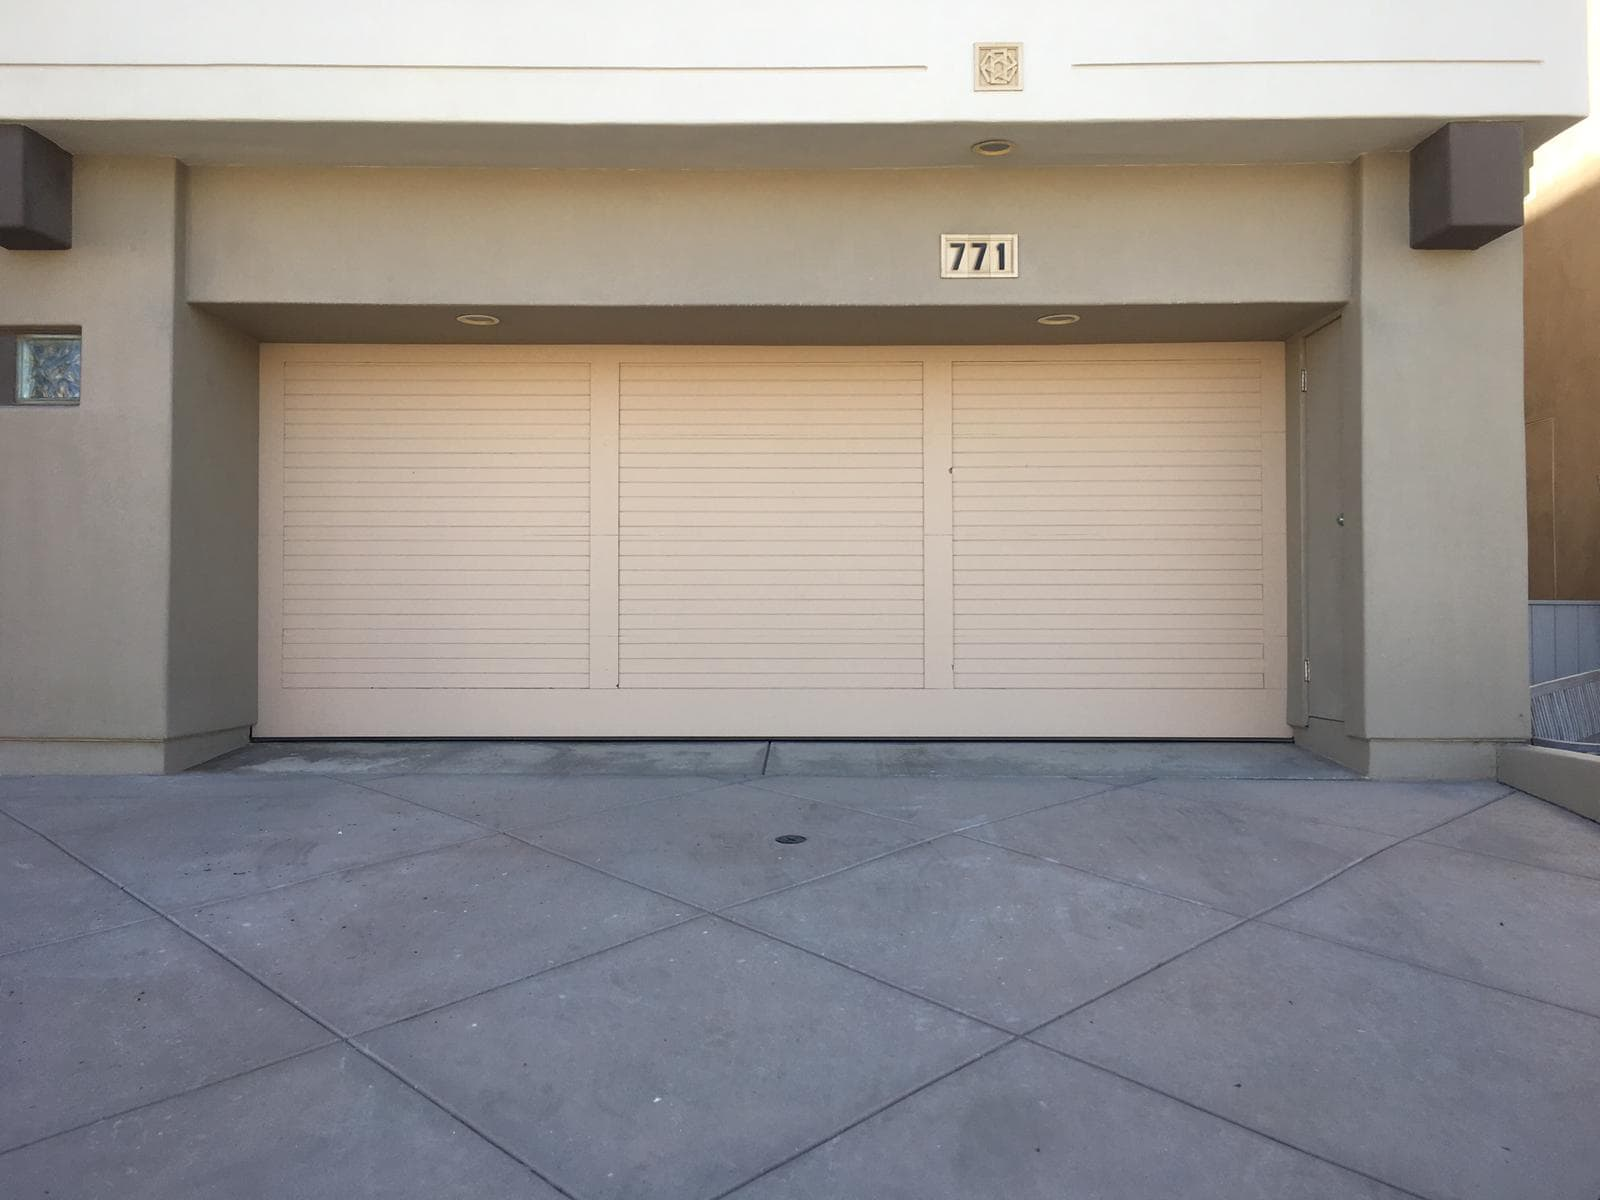 Antelope Garage door repair and replacement